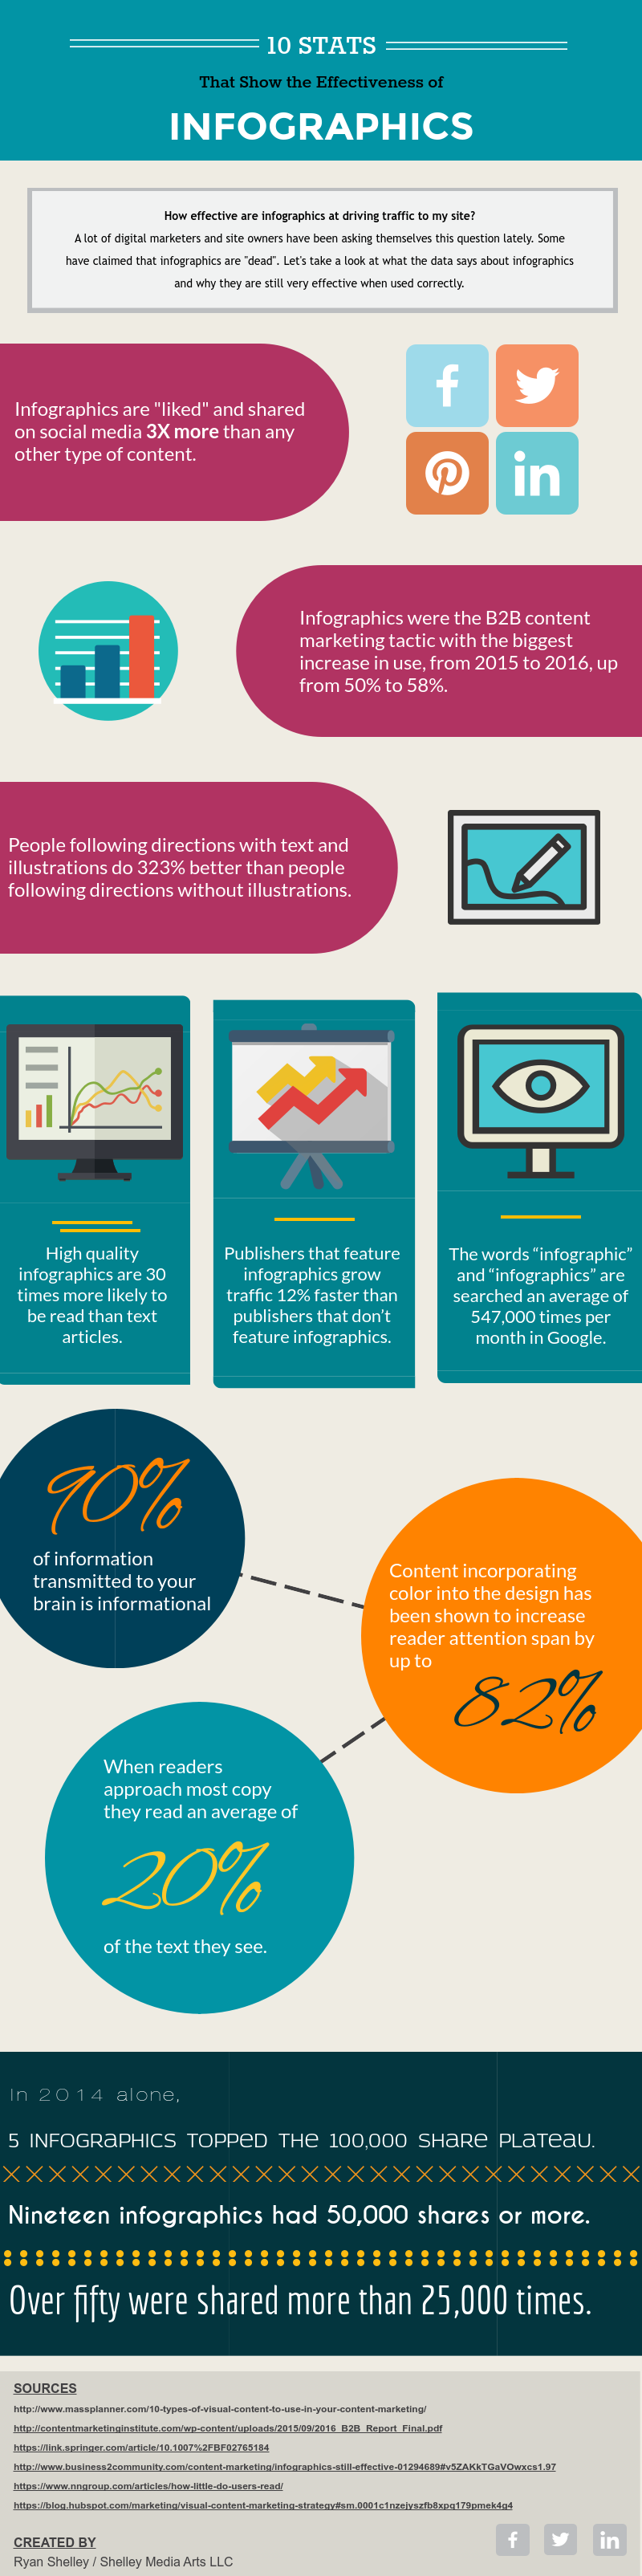 Why Infographics Work